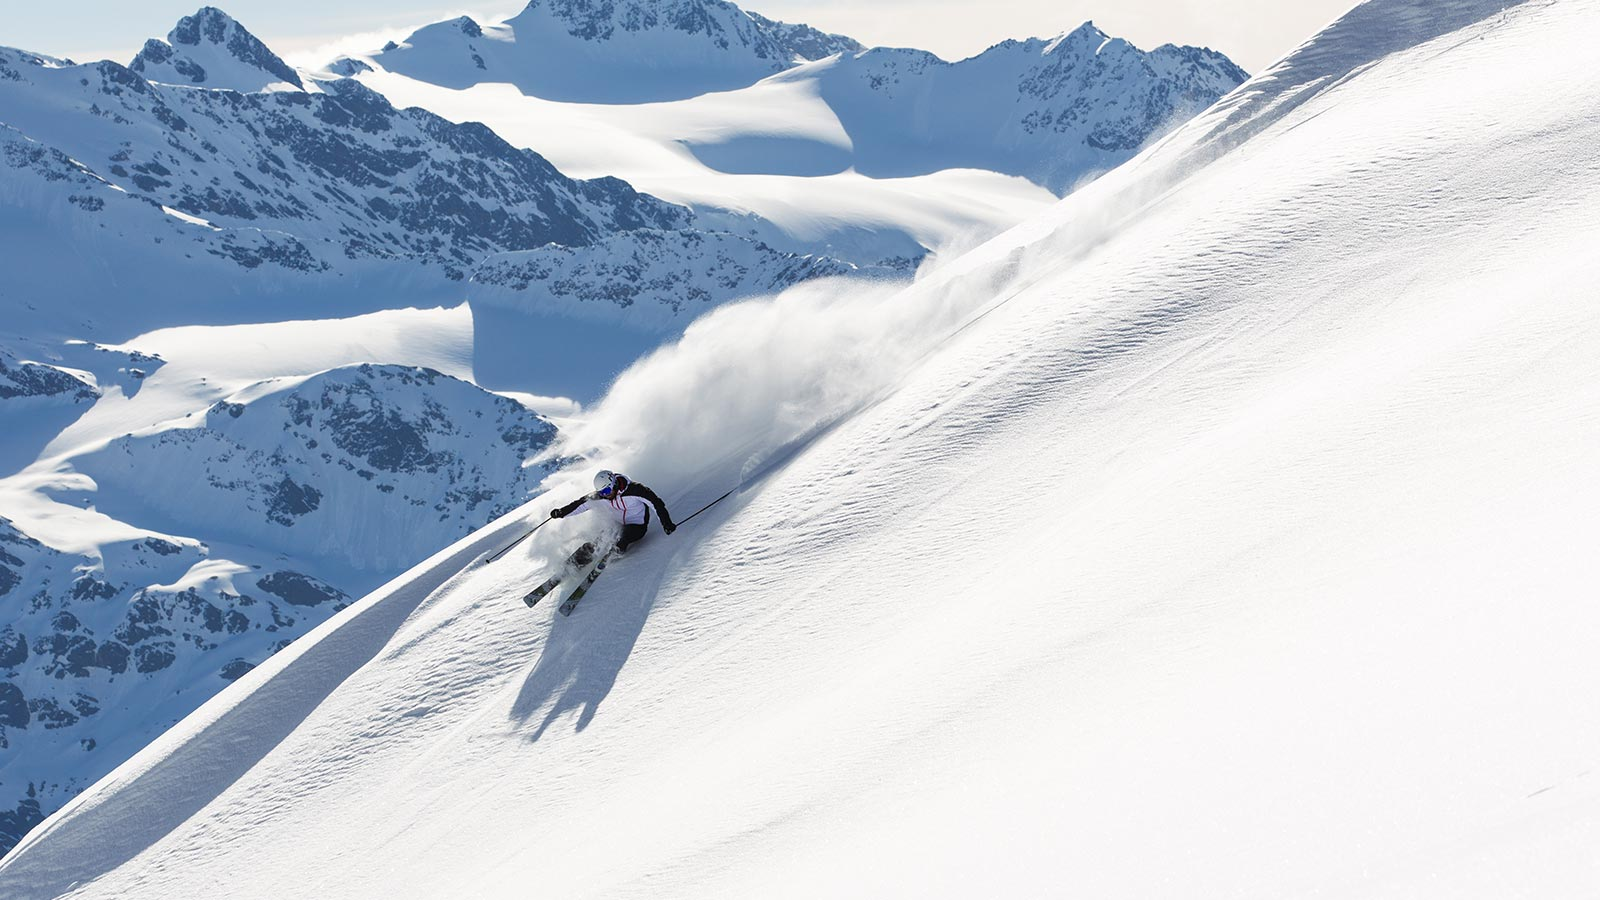 Skier spends a day skiing in the heart of Stelvio National Park